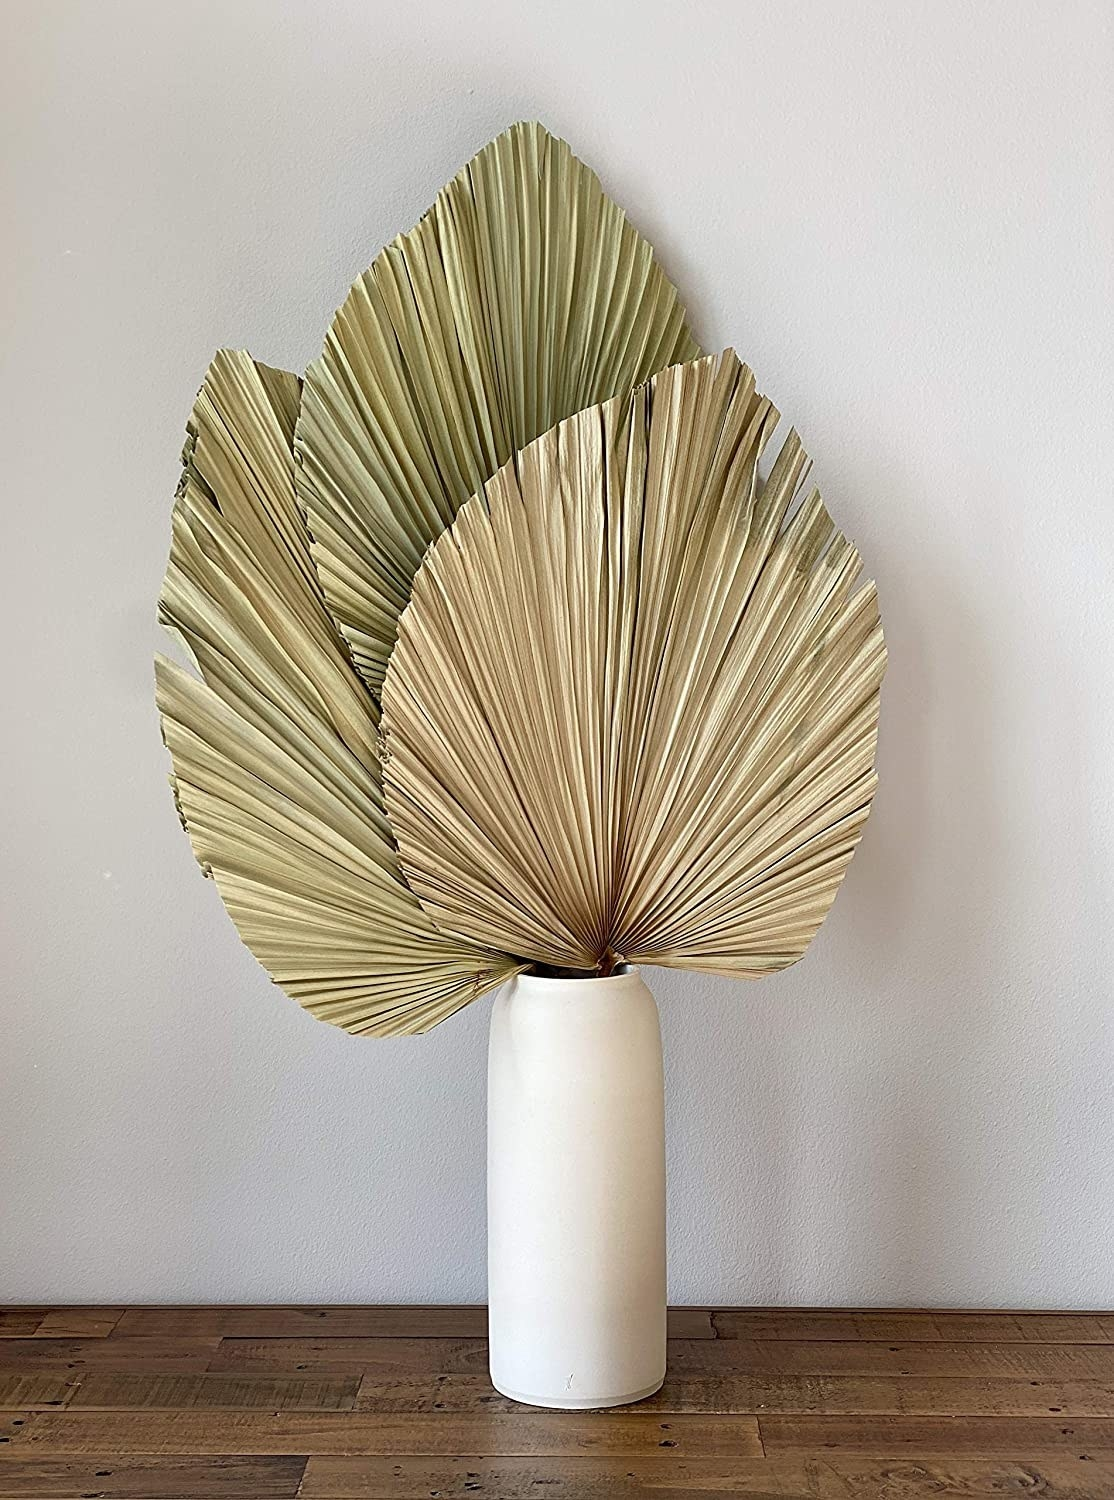 Three dried palm leaves in a white vase